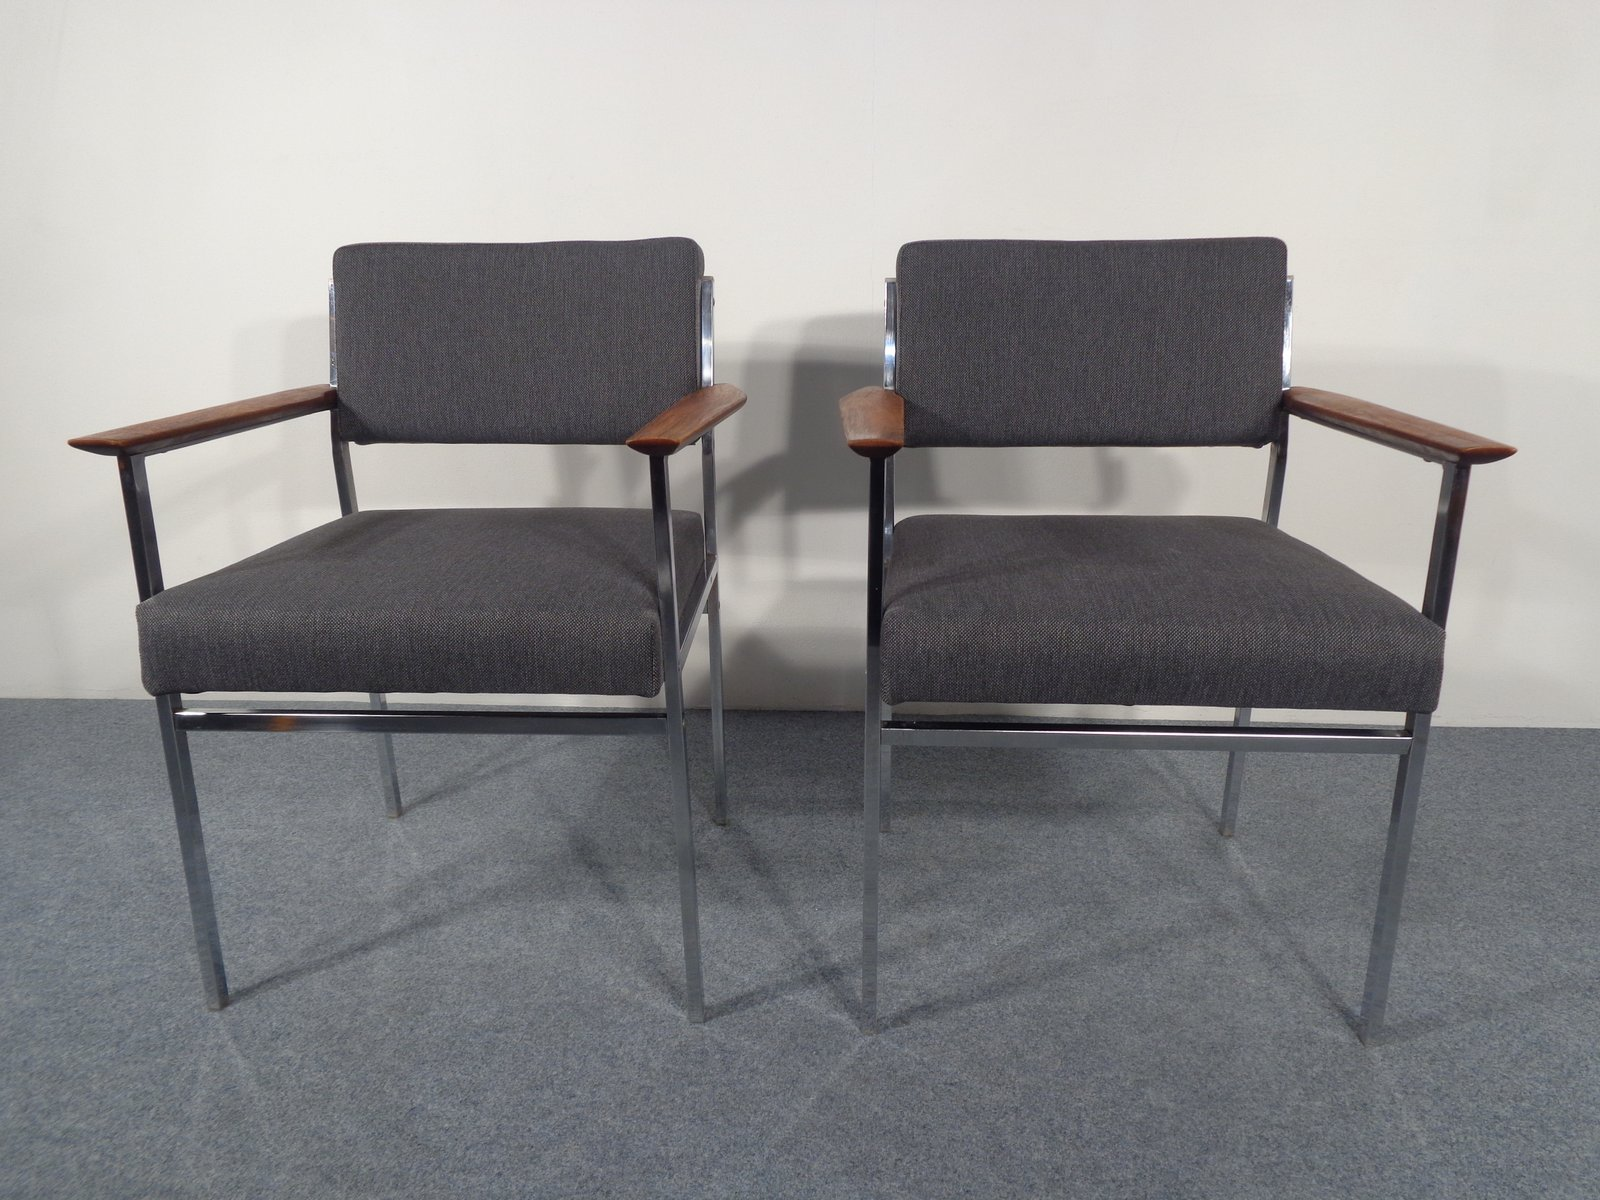 Vintage Square Tubular Steel Armchairs Set of 2 for sale at Pamono